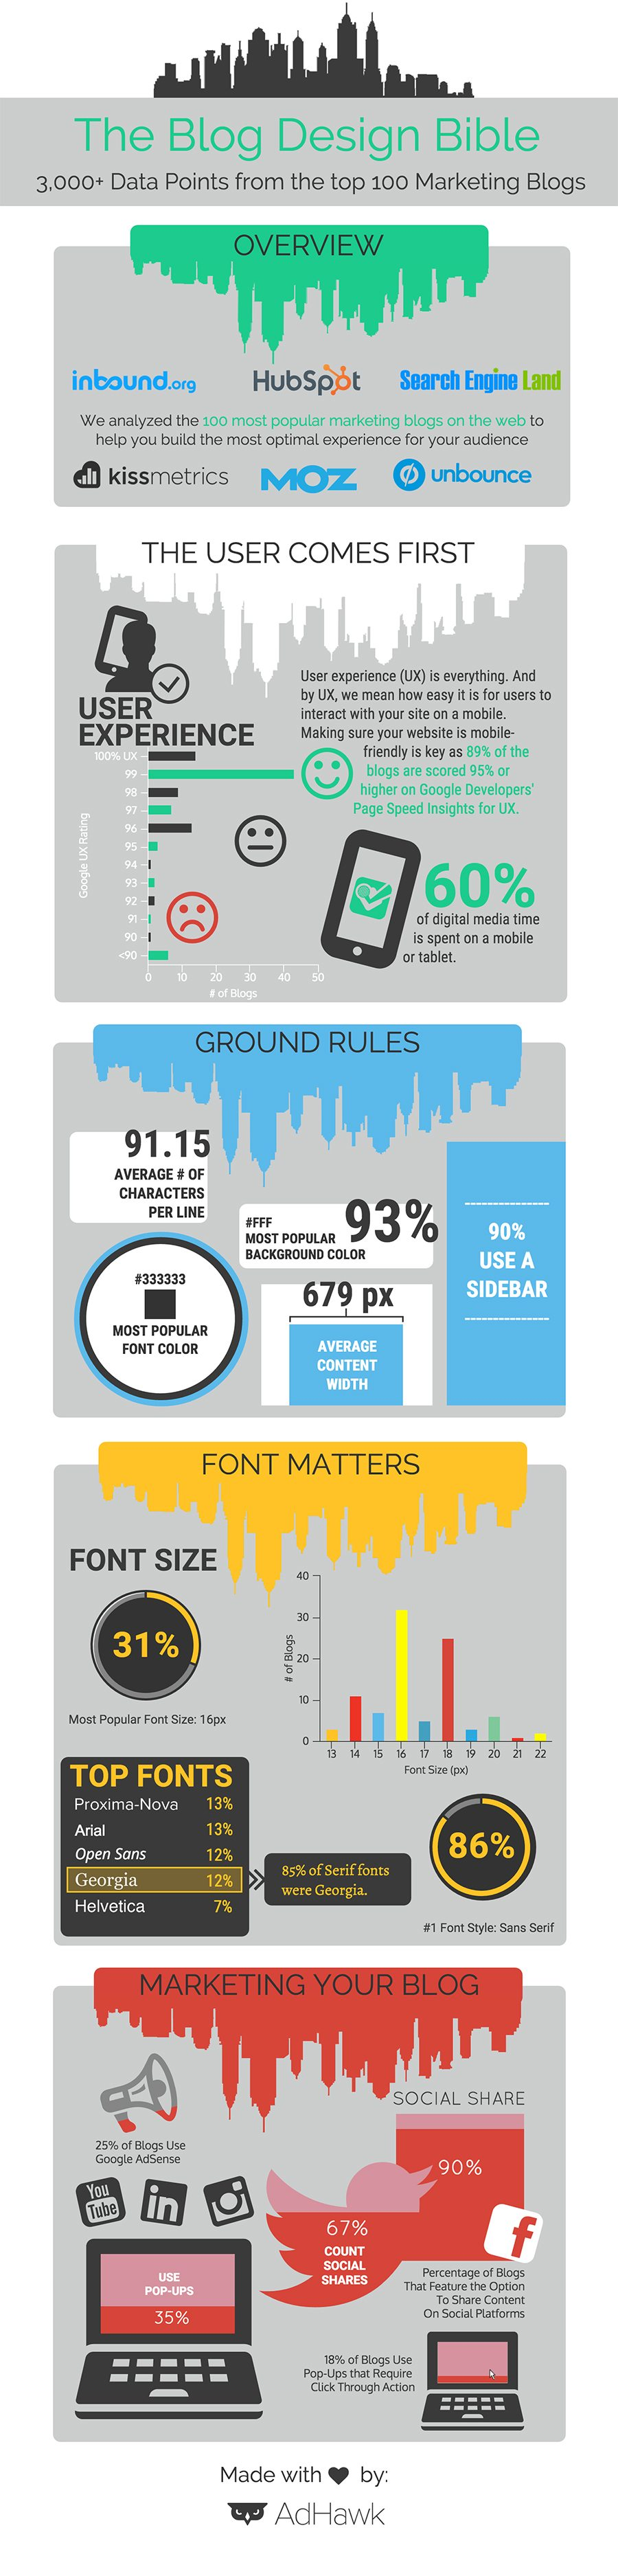 10 Blog Design Stats to Shape Your Blogging Strategy [Infographic] | Social Media Today